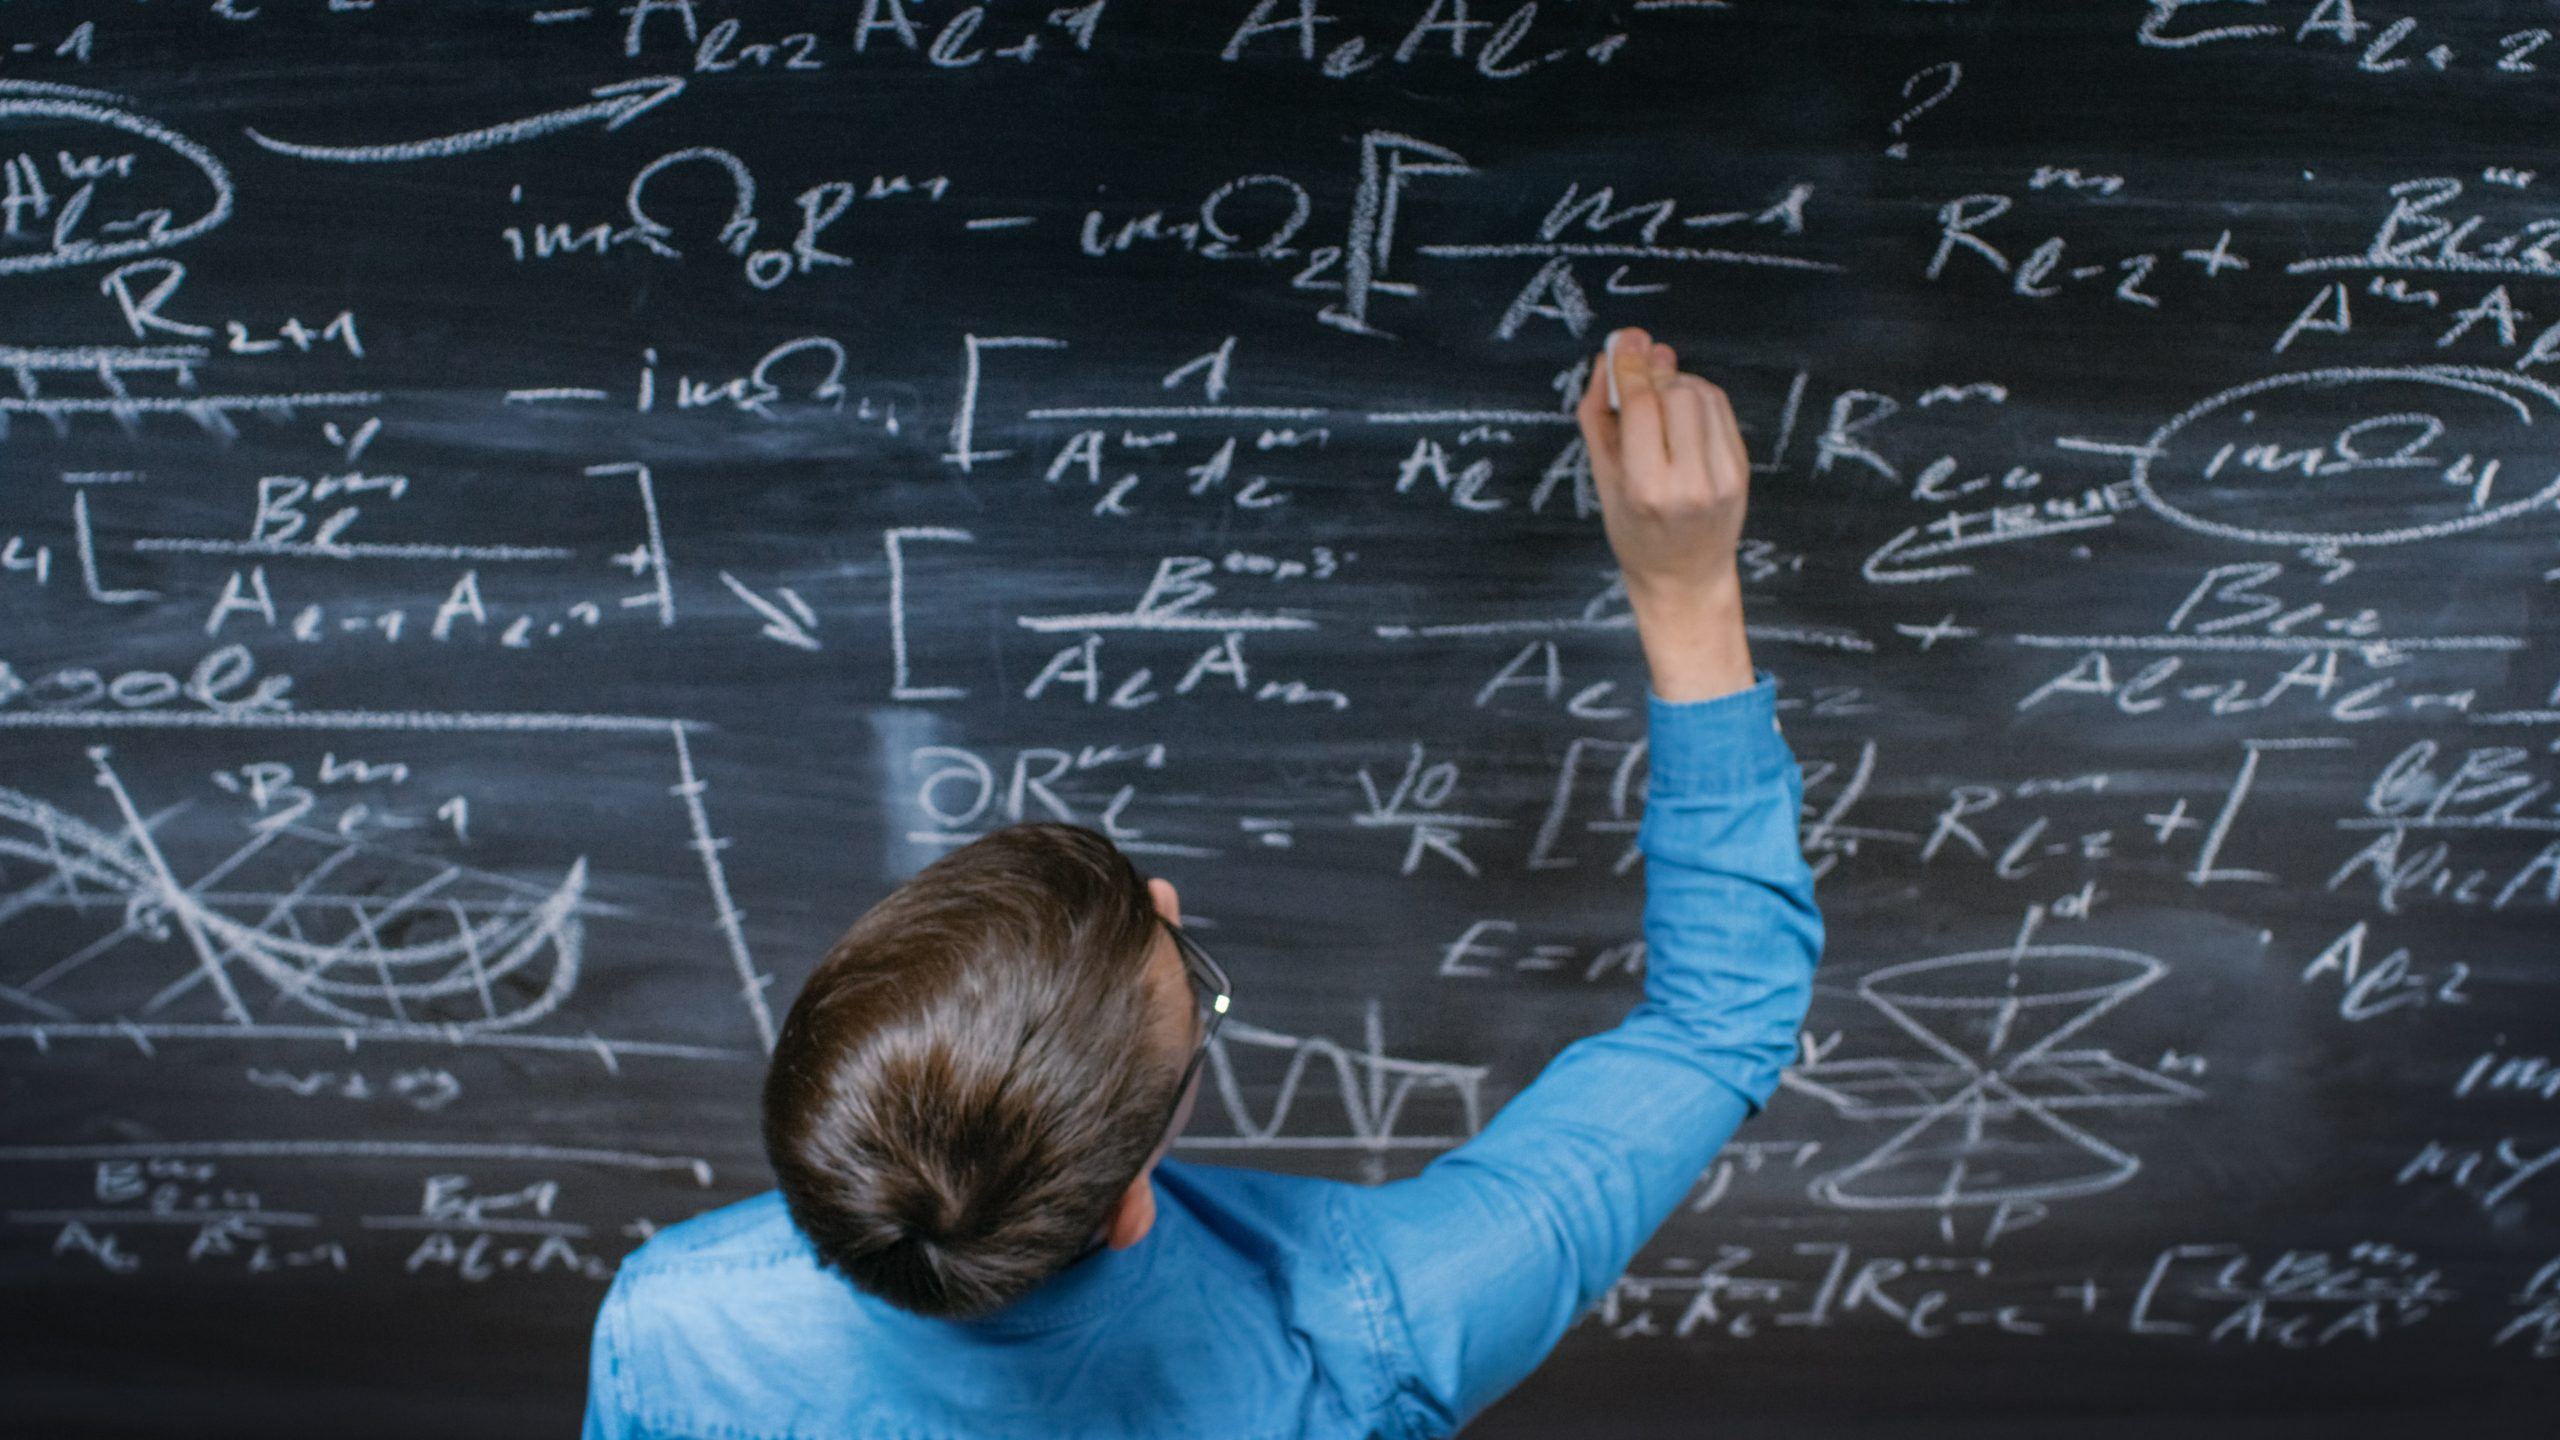 Can a physicist embrace idealism?